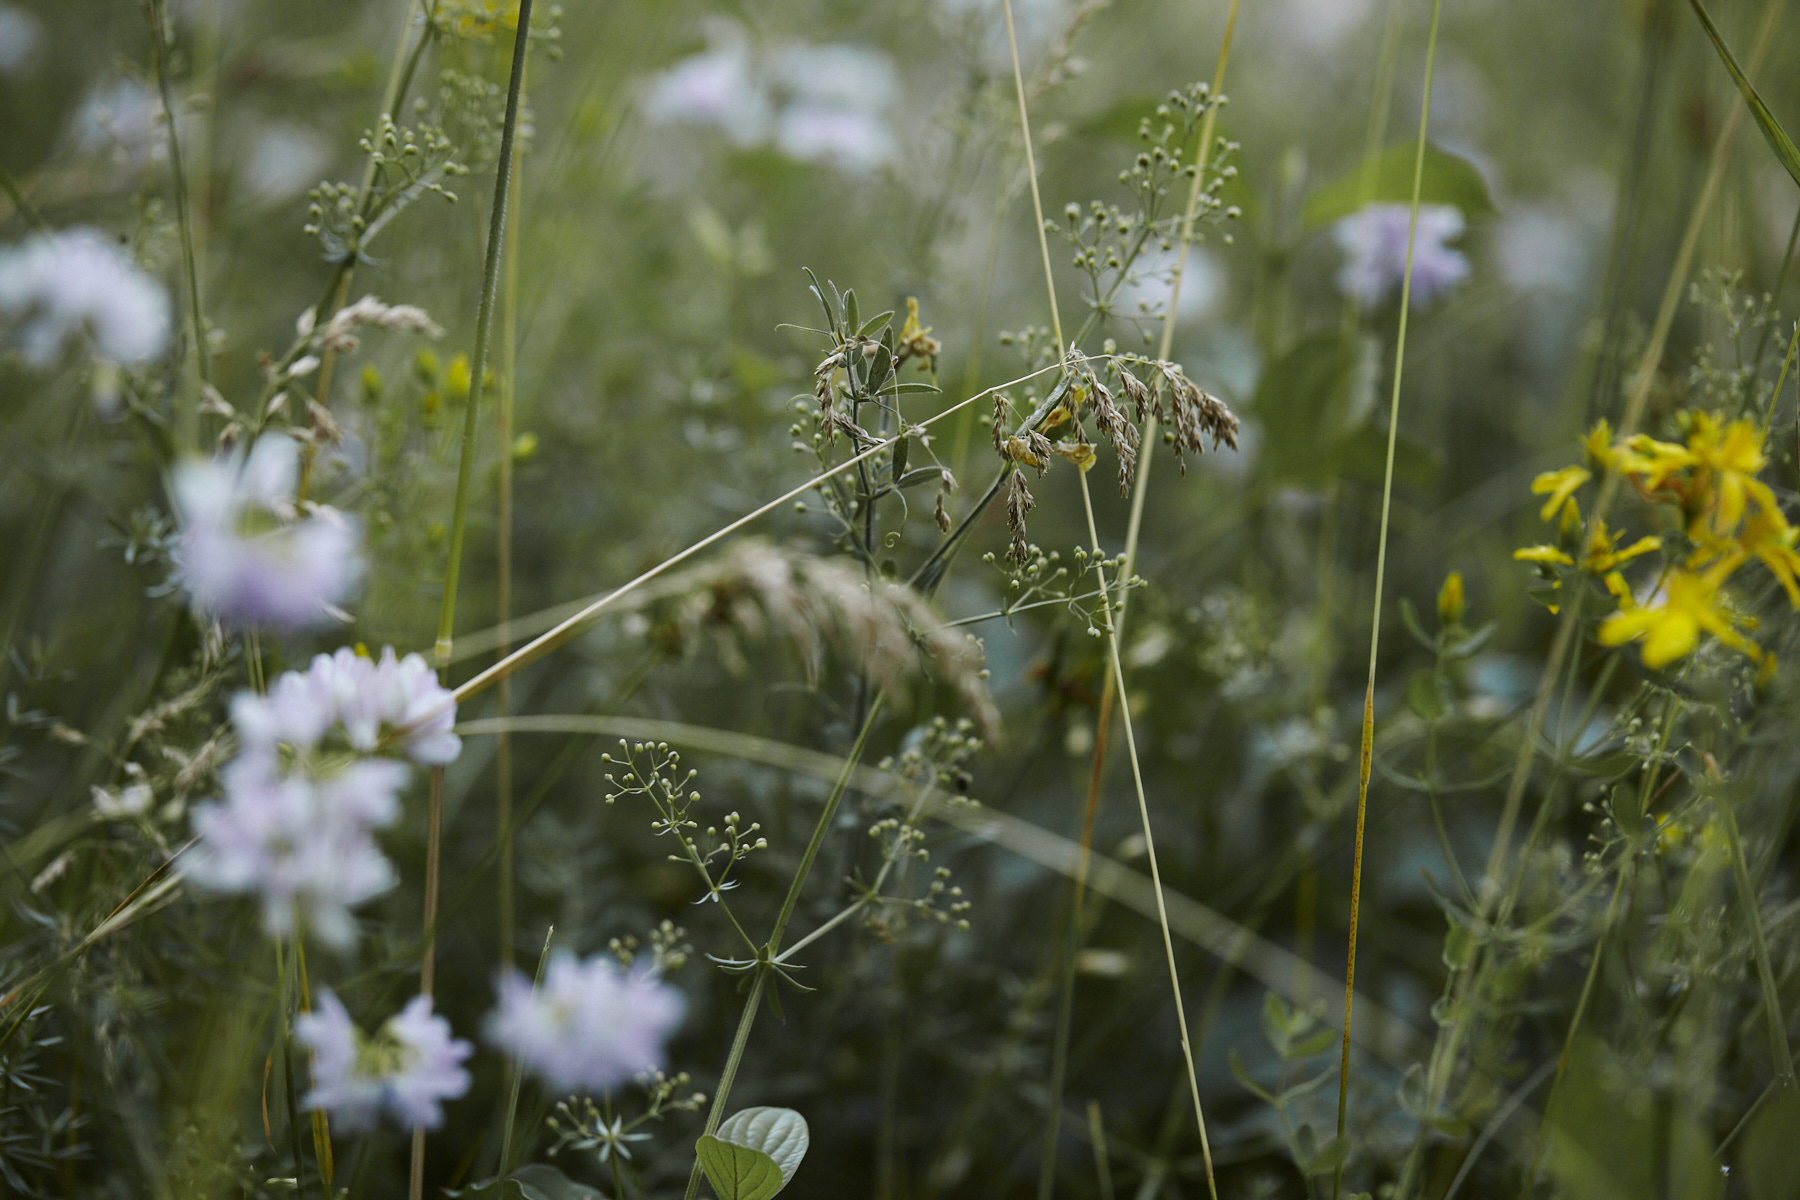 Detail of grasses and wildflowers in the garden.